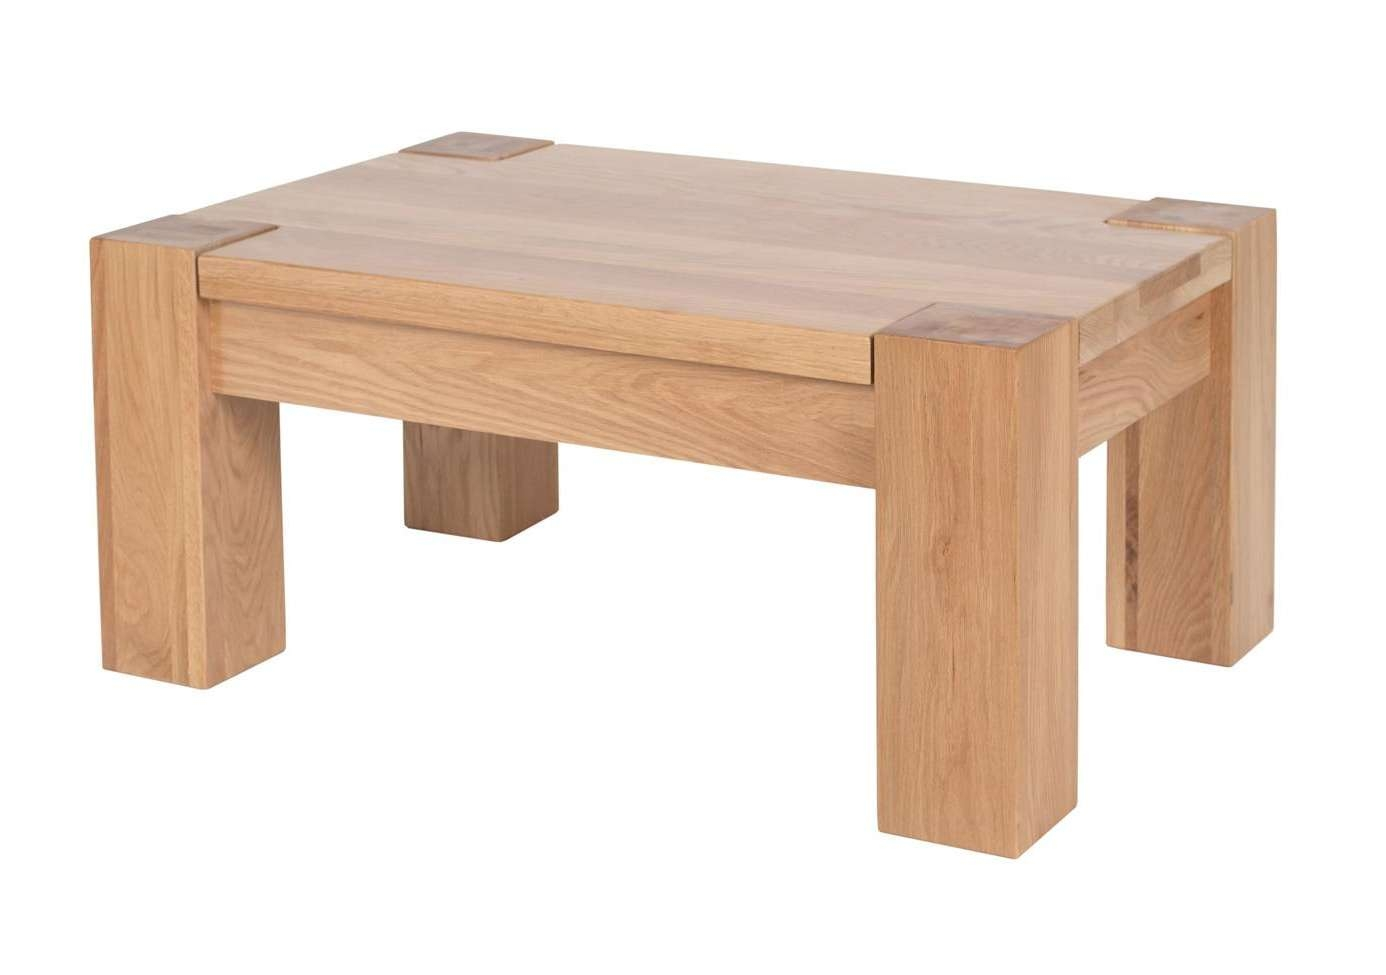 Coffee Tables : Beautiful Big Coffee Tables French Country Coffee With Regard To Trendy Small Coffee Tables (View 9 of 20)